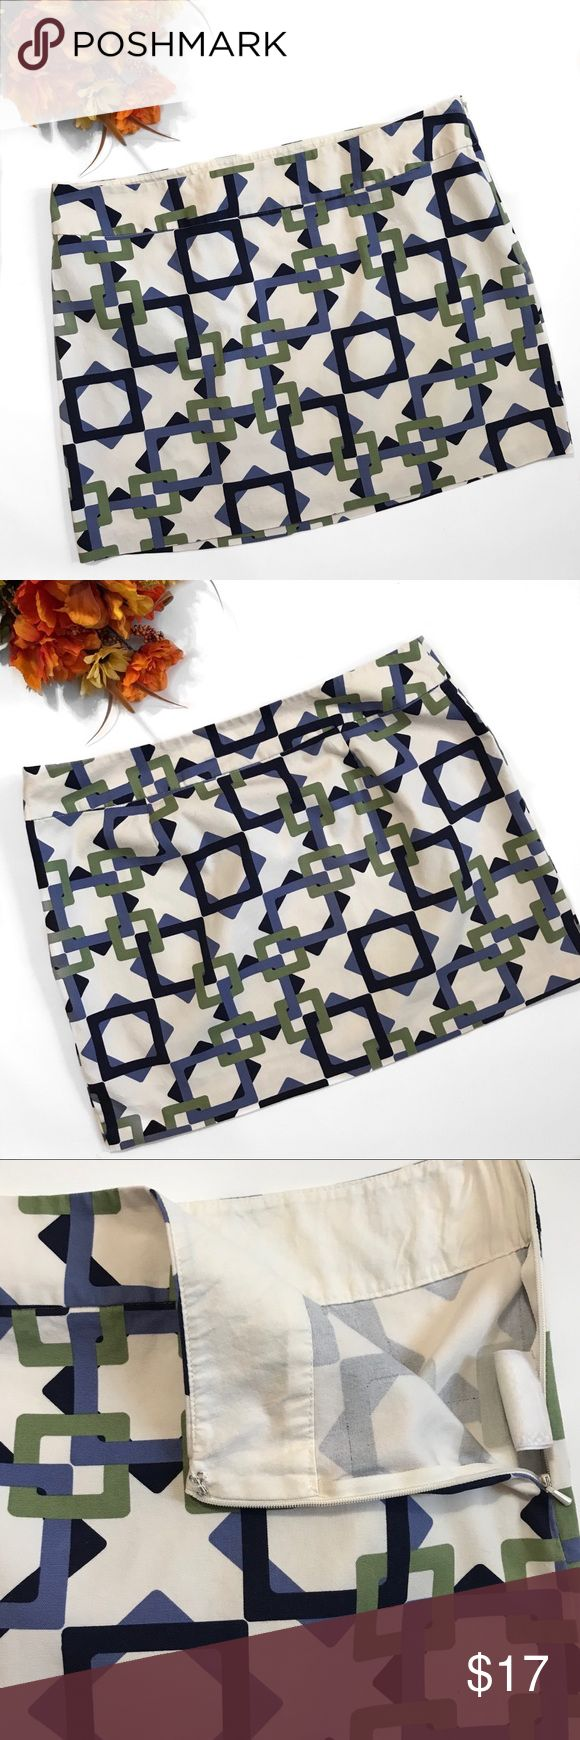 """Old Navy Geometric Size 14 Skirt Cute Old Navy skirt with green, navy and periwinkle colored squares throughout a cream skirt...side zipper with a little hook n eye at top...Size 14 it measures about 18.25-18.5"""" across waist laying flat and is about 16"""" Long...offers welcome bundle to save more plus ⚡️📦📫😃💕 Old Navy Skirts"""